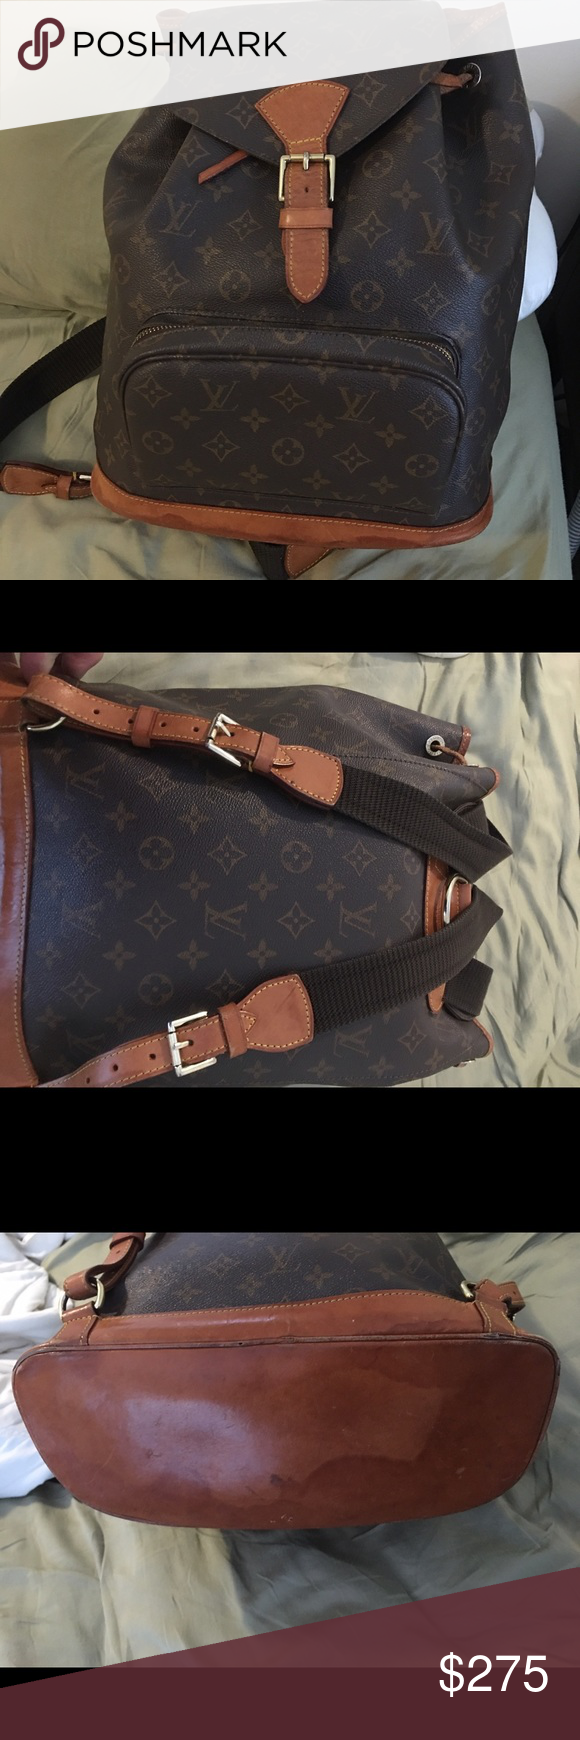 Louis Vuitton monogram backpack unisex This is nice LV backpack. There are water marks on the bottom leather. Some wear at the edges. Overall in nice condition. One of the straps is missing a second loop (each shoulder strap come with two loops) which doesn't affect usage. Date code is SP1011. You'll kids will love to go to school now. They might come home with a bloody nose due to some bully calling him a snob and punching him in the face, perhaps even knocking out a tooth. But no worries…